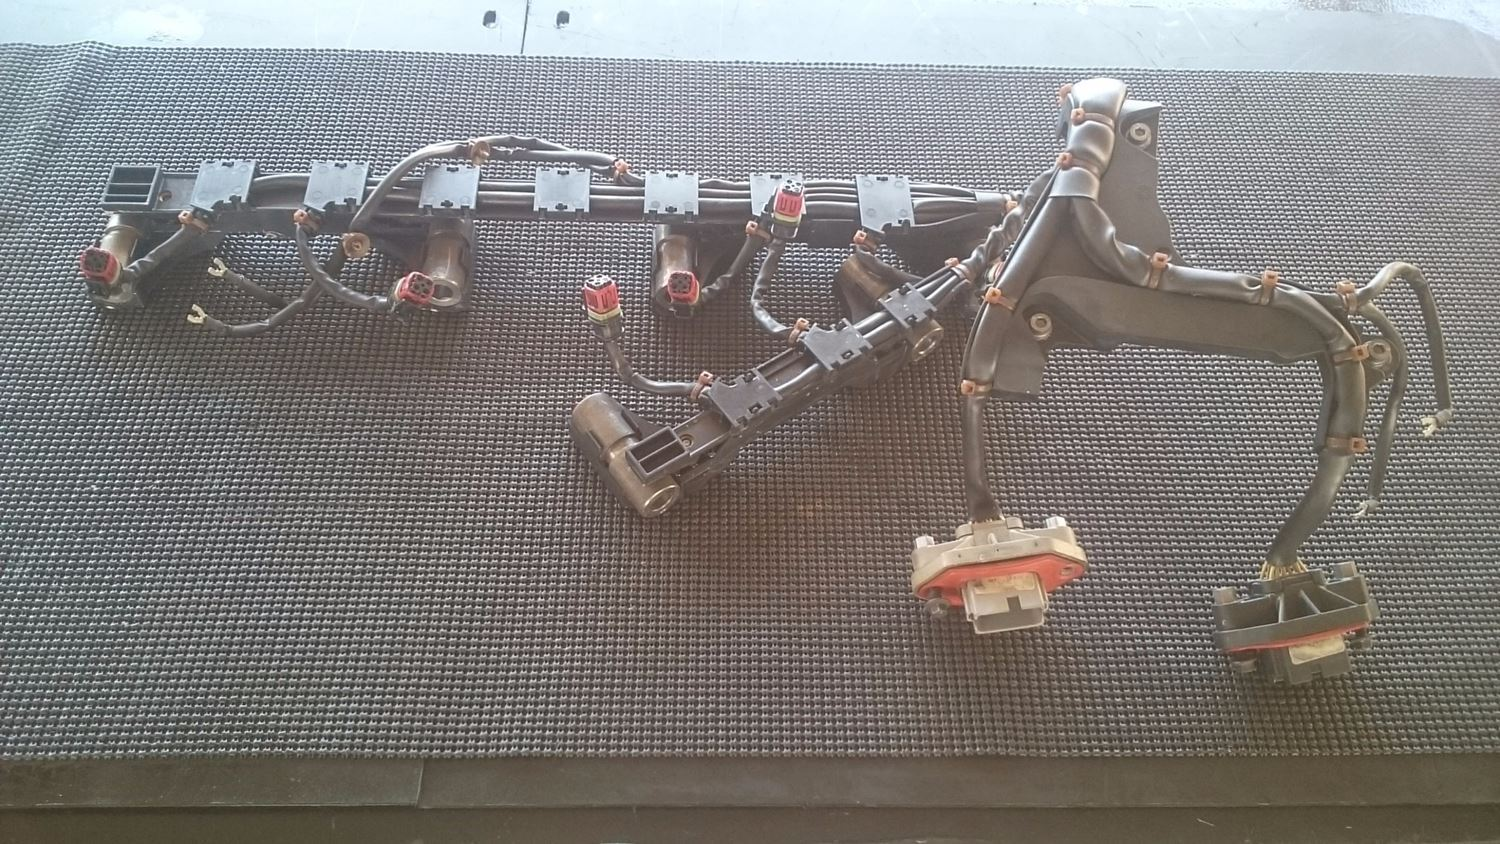 wiring harnesses new and used parts american truck chrome 14 0l detroit diesel small wiring harness